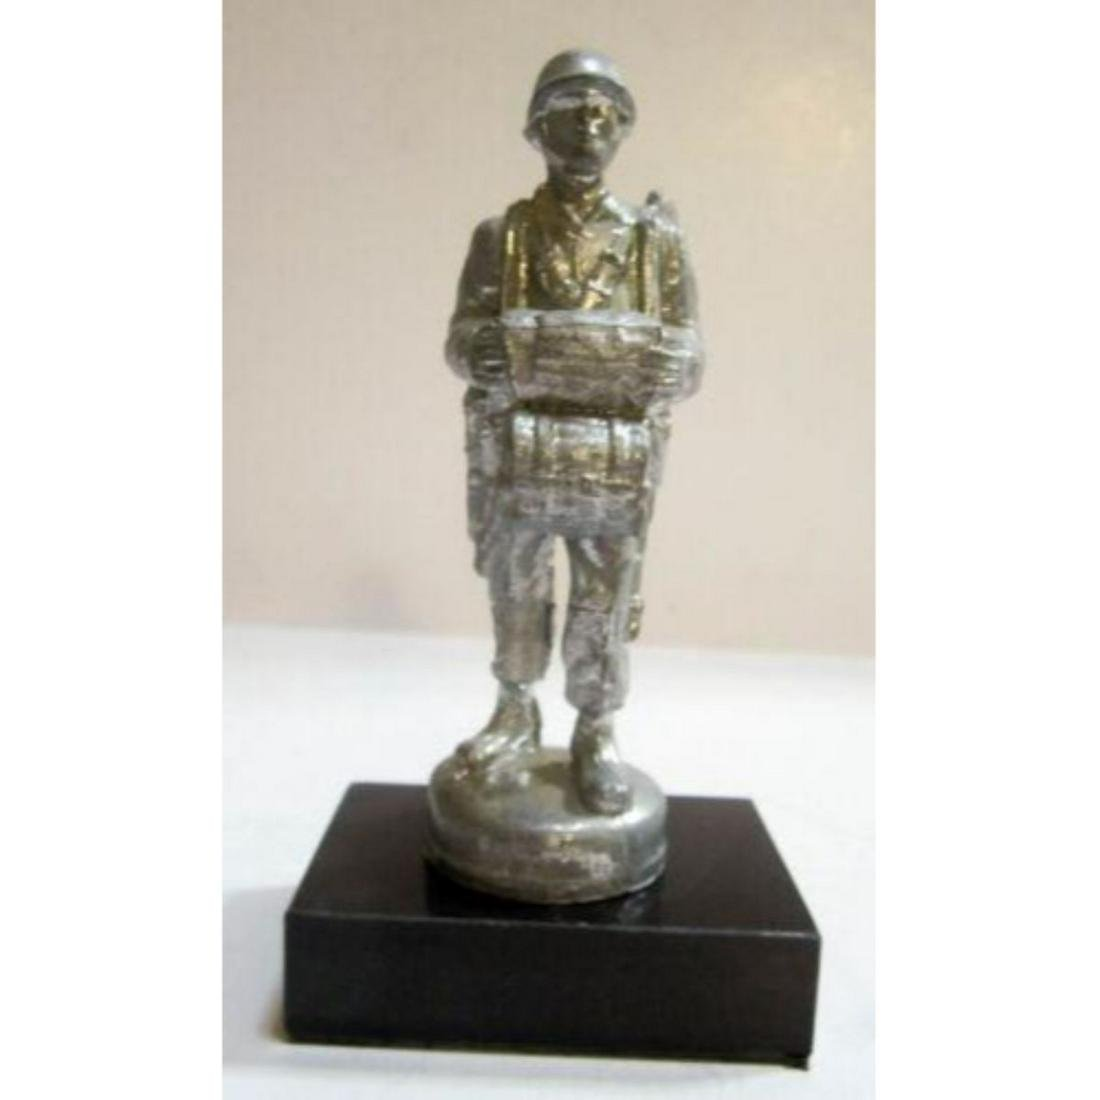 WWII US Army USMC Airborne Paratrooper Military Soldier